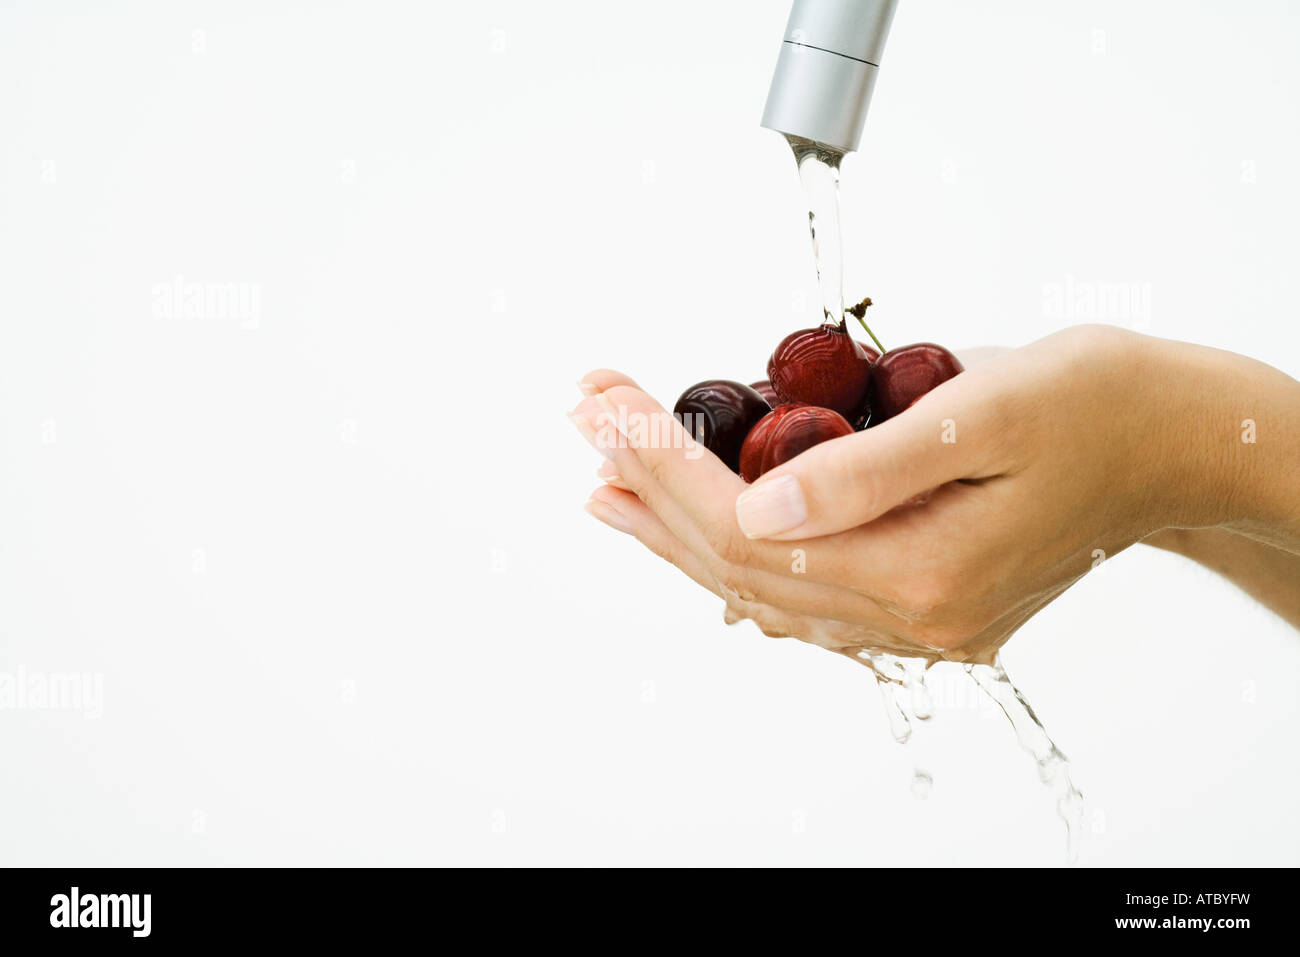 Woman washing handful of tomatoes under faucet, cropped view of hands, close-up - Stock Image